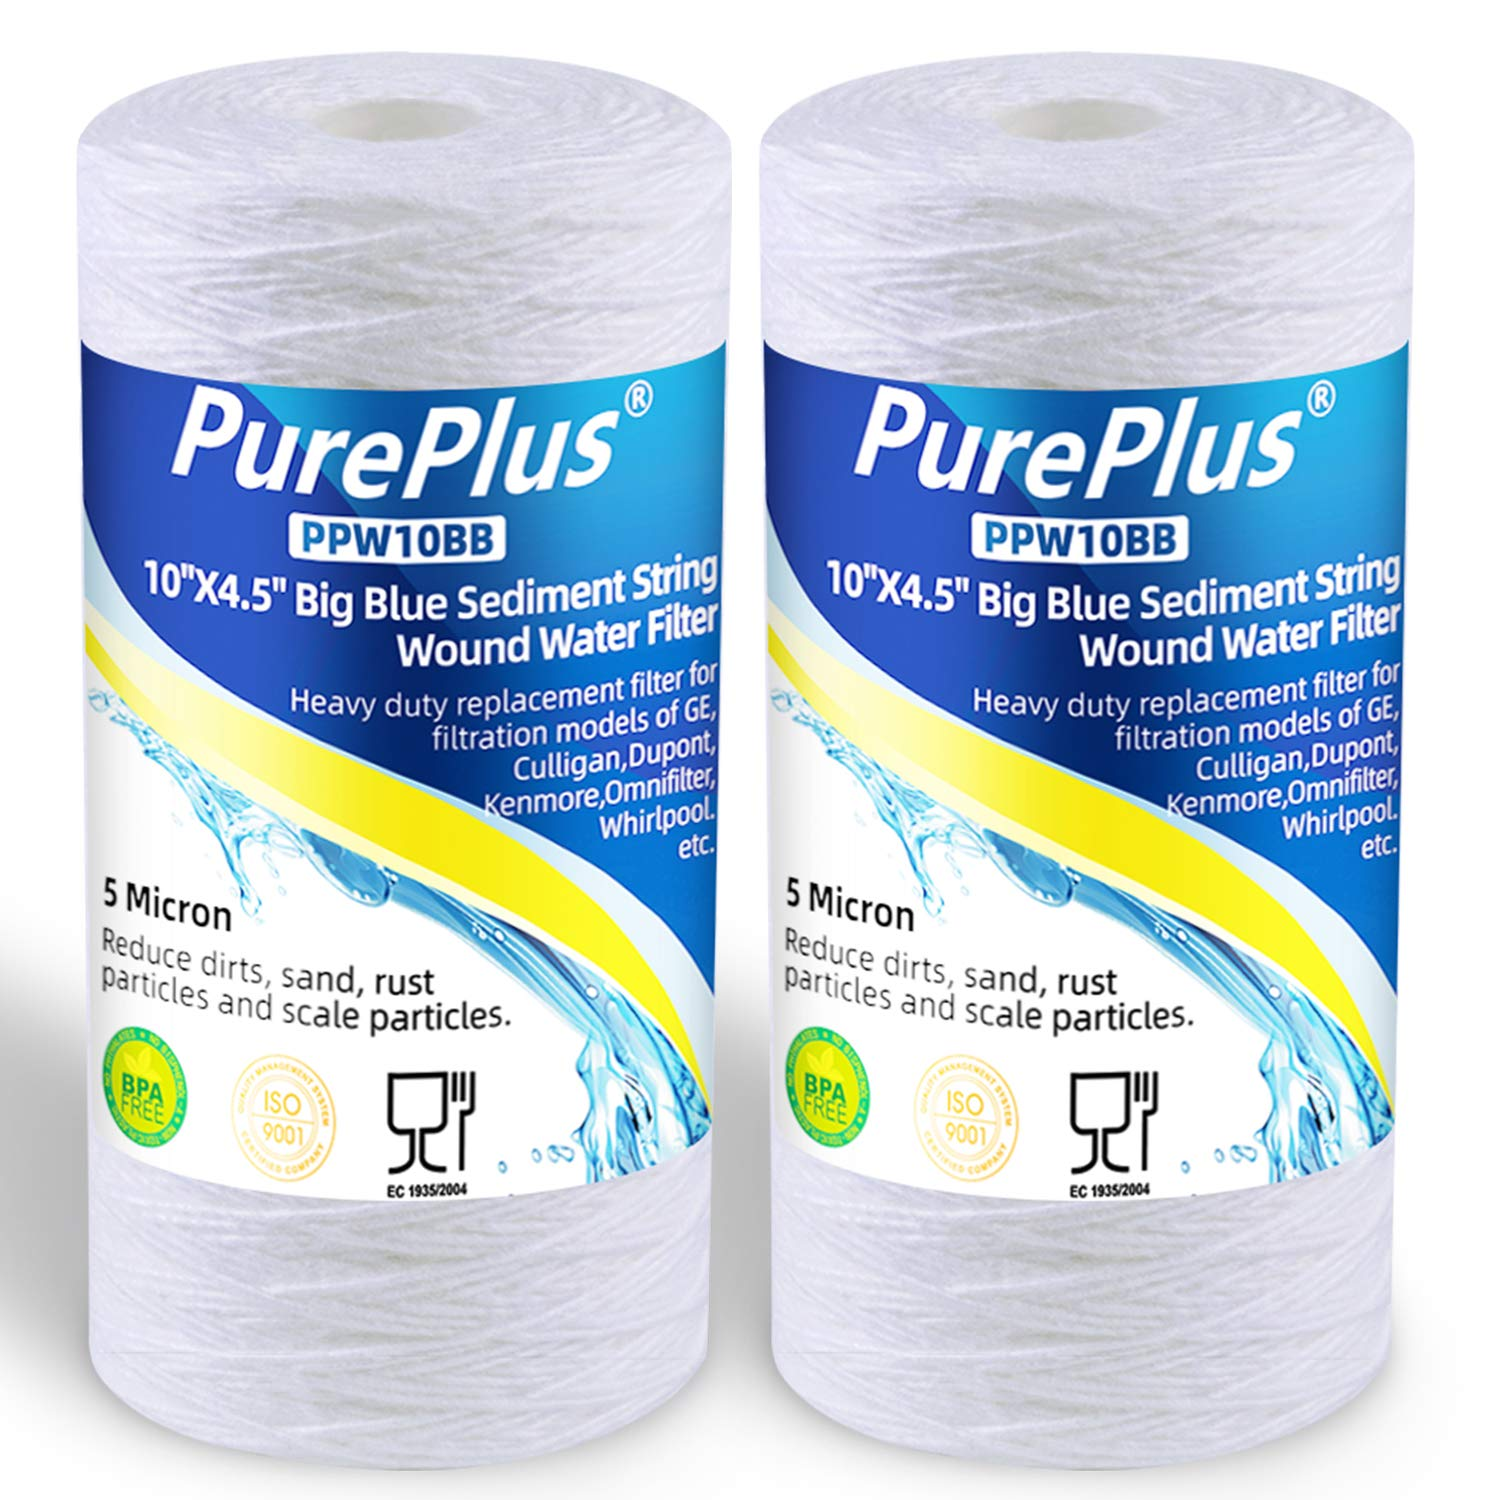 "PUREPLUS 5 Micron 4.5"" x 10"" Whole House Big Blue Sediment String Water Filter Replacement Cartridge Compatible with 84637, WPX5BB97P, PC10, 355214-45, 355215-45, WP10BB97P, WP5BB97P, 2-Pack"